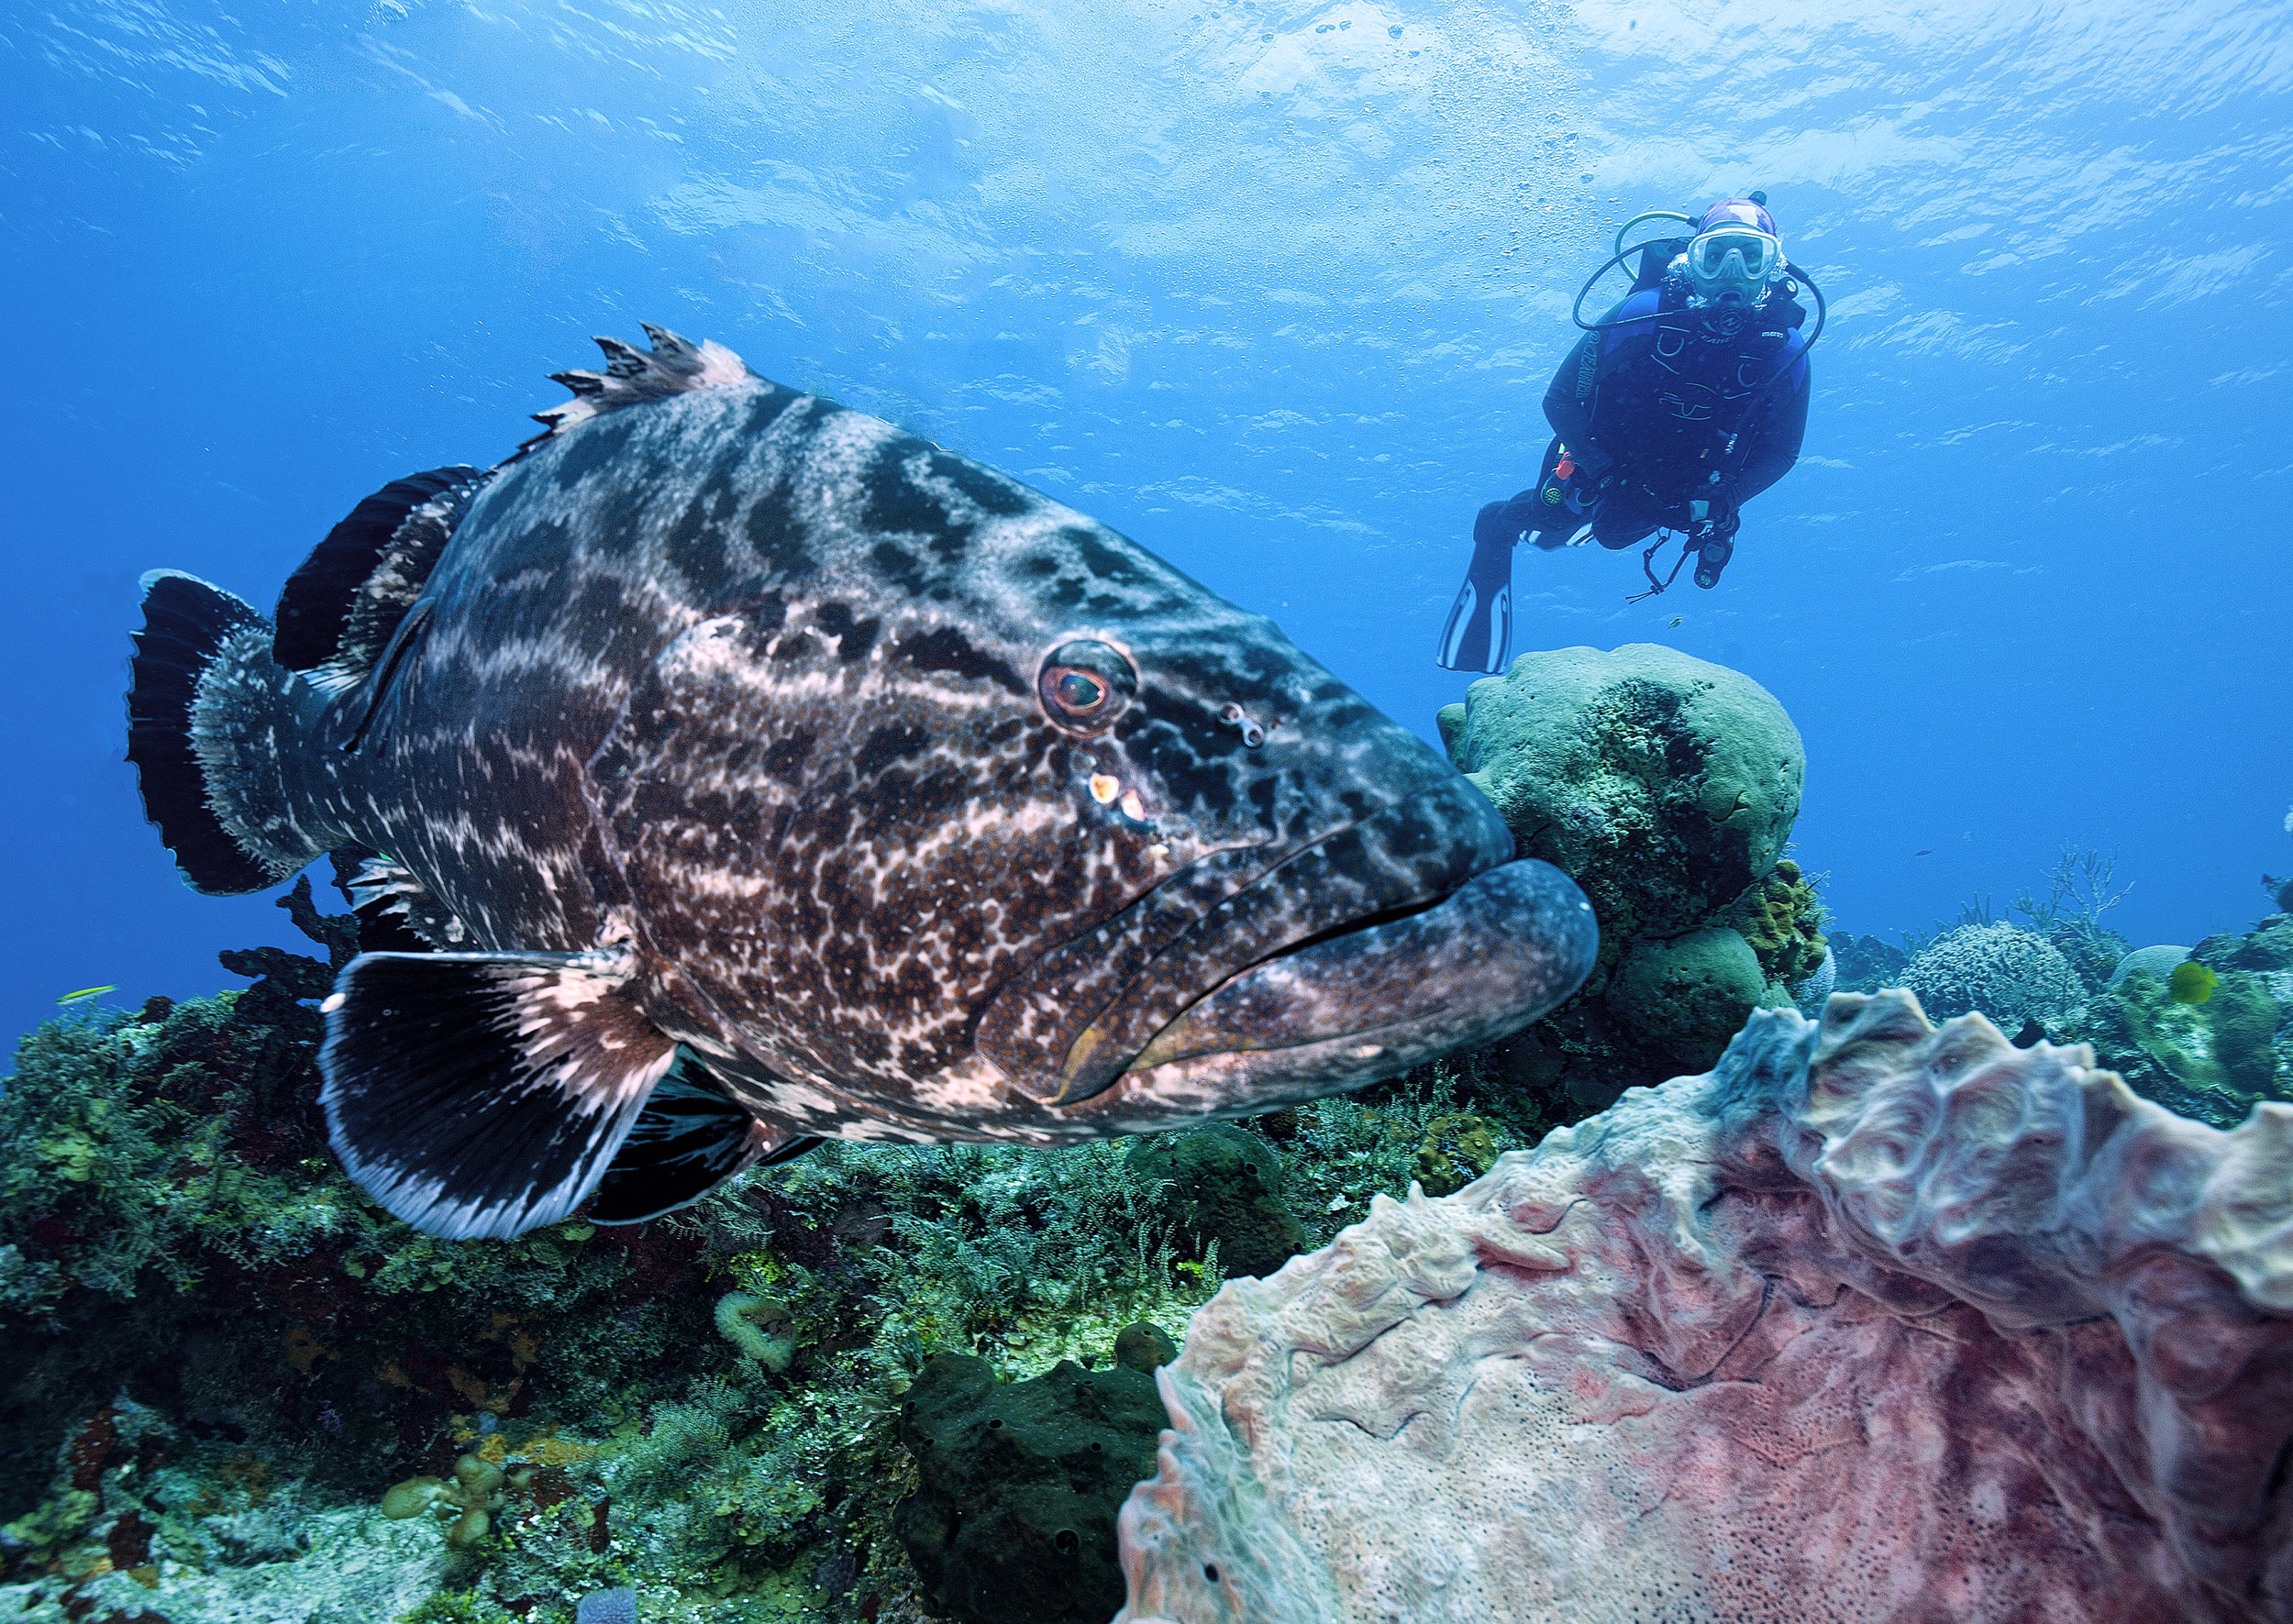 Black grouper in Cozumel Mexico credit: Jett Britnell / coral reef image bank